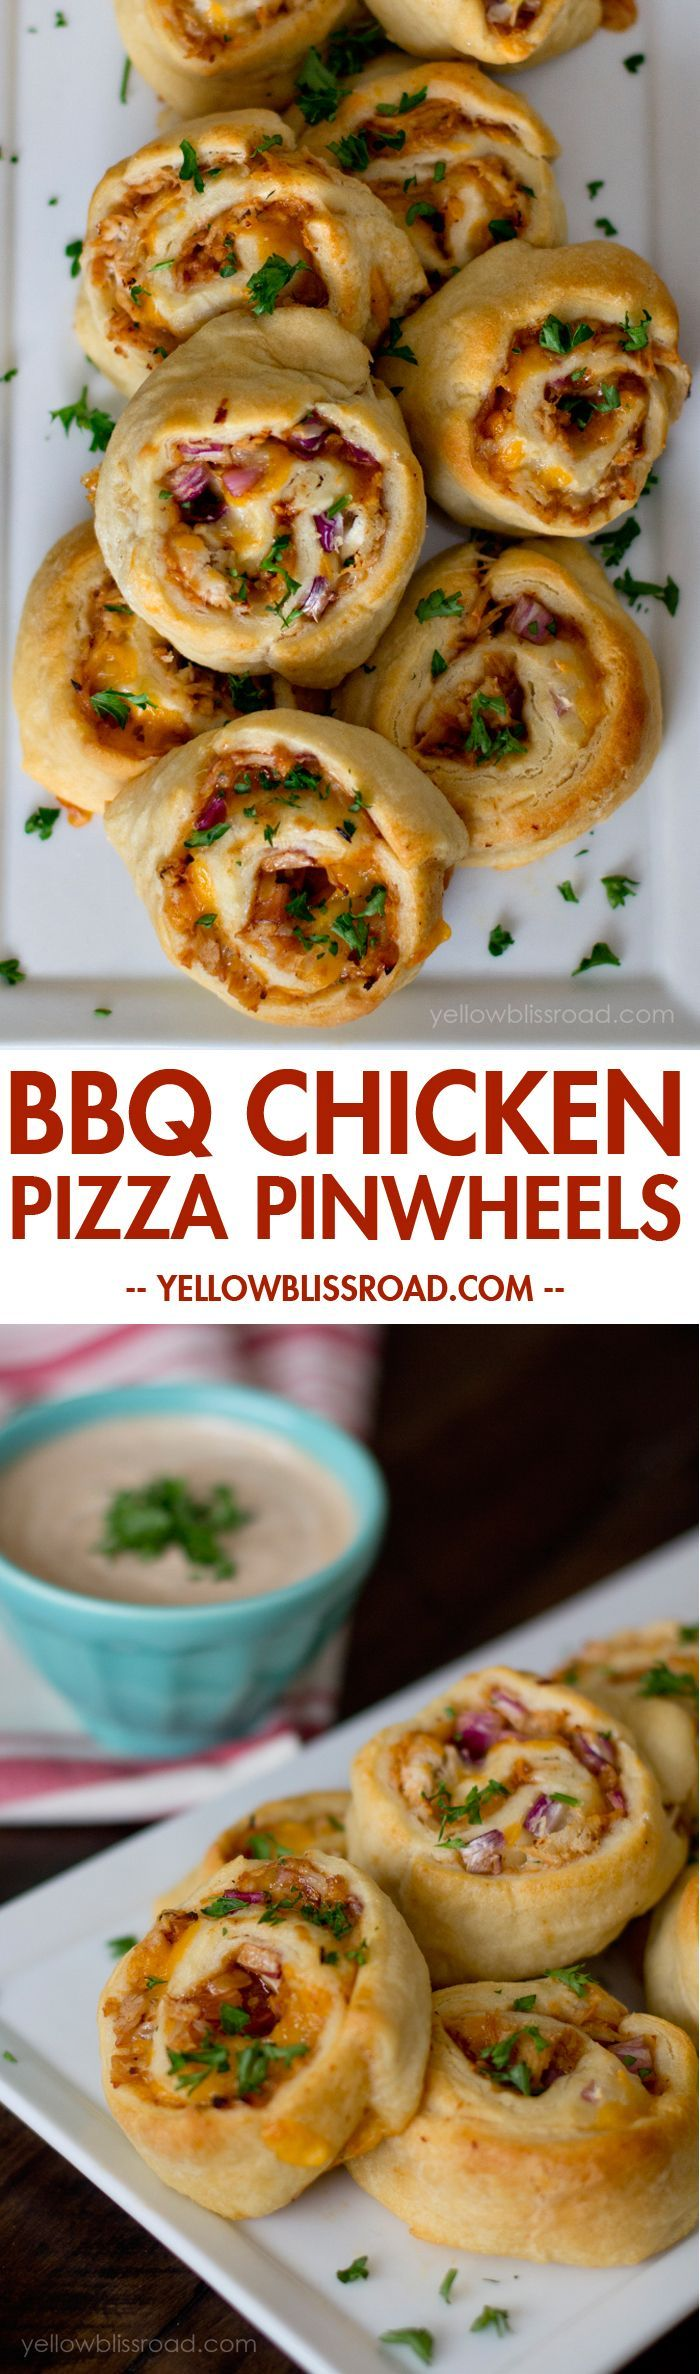 BBQ Chicken Pizza Pinwheels